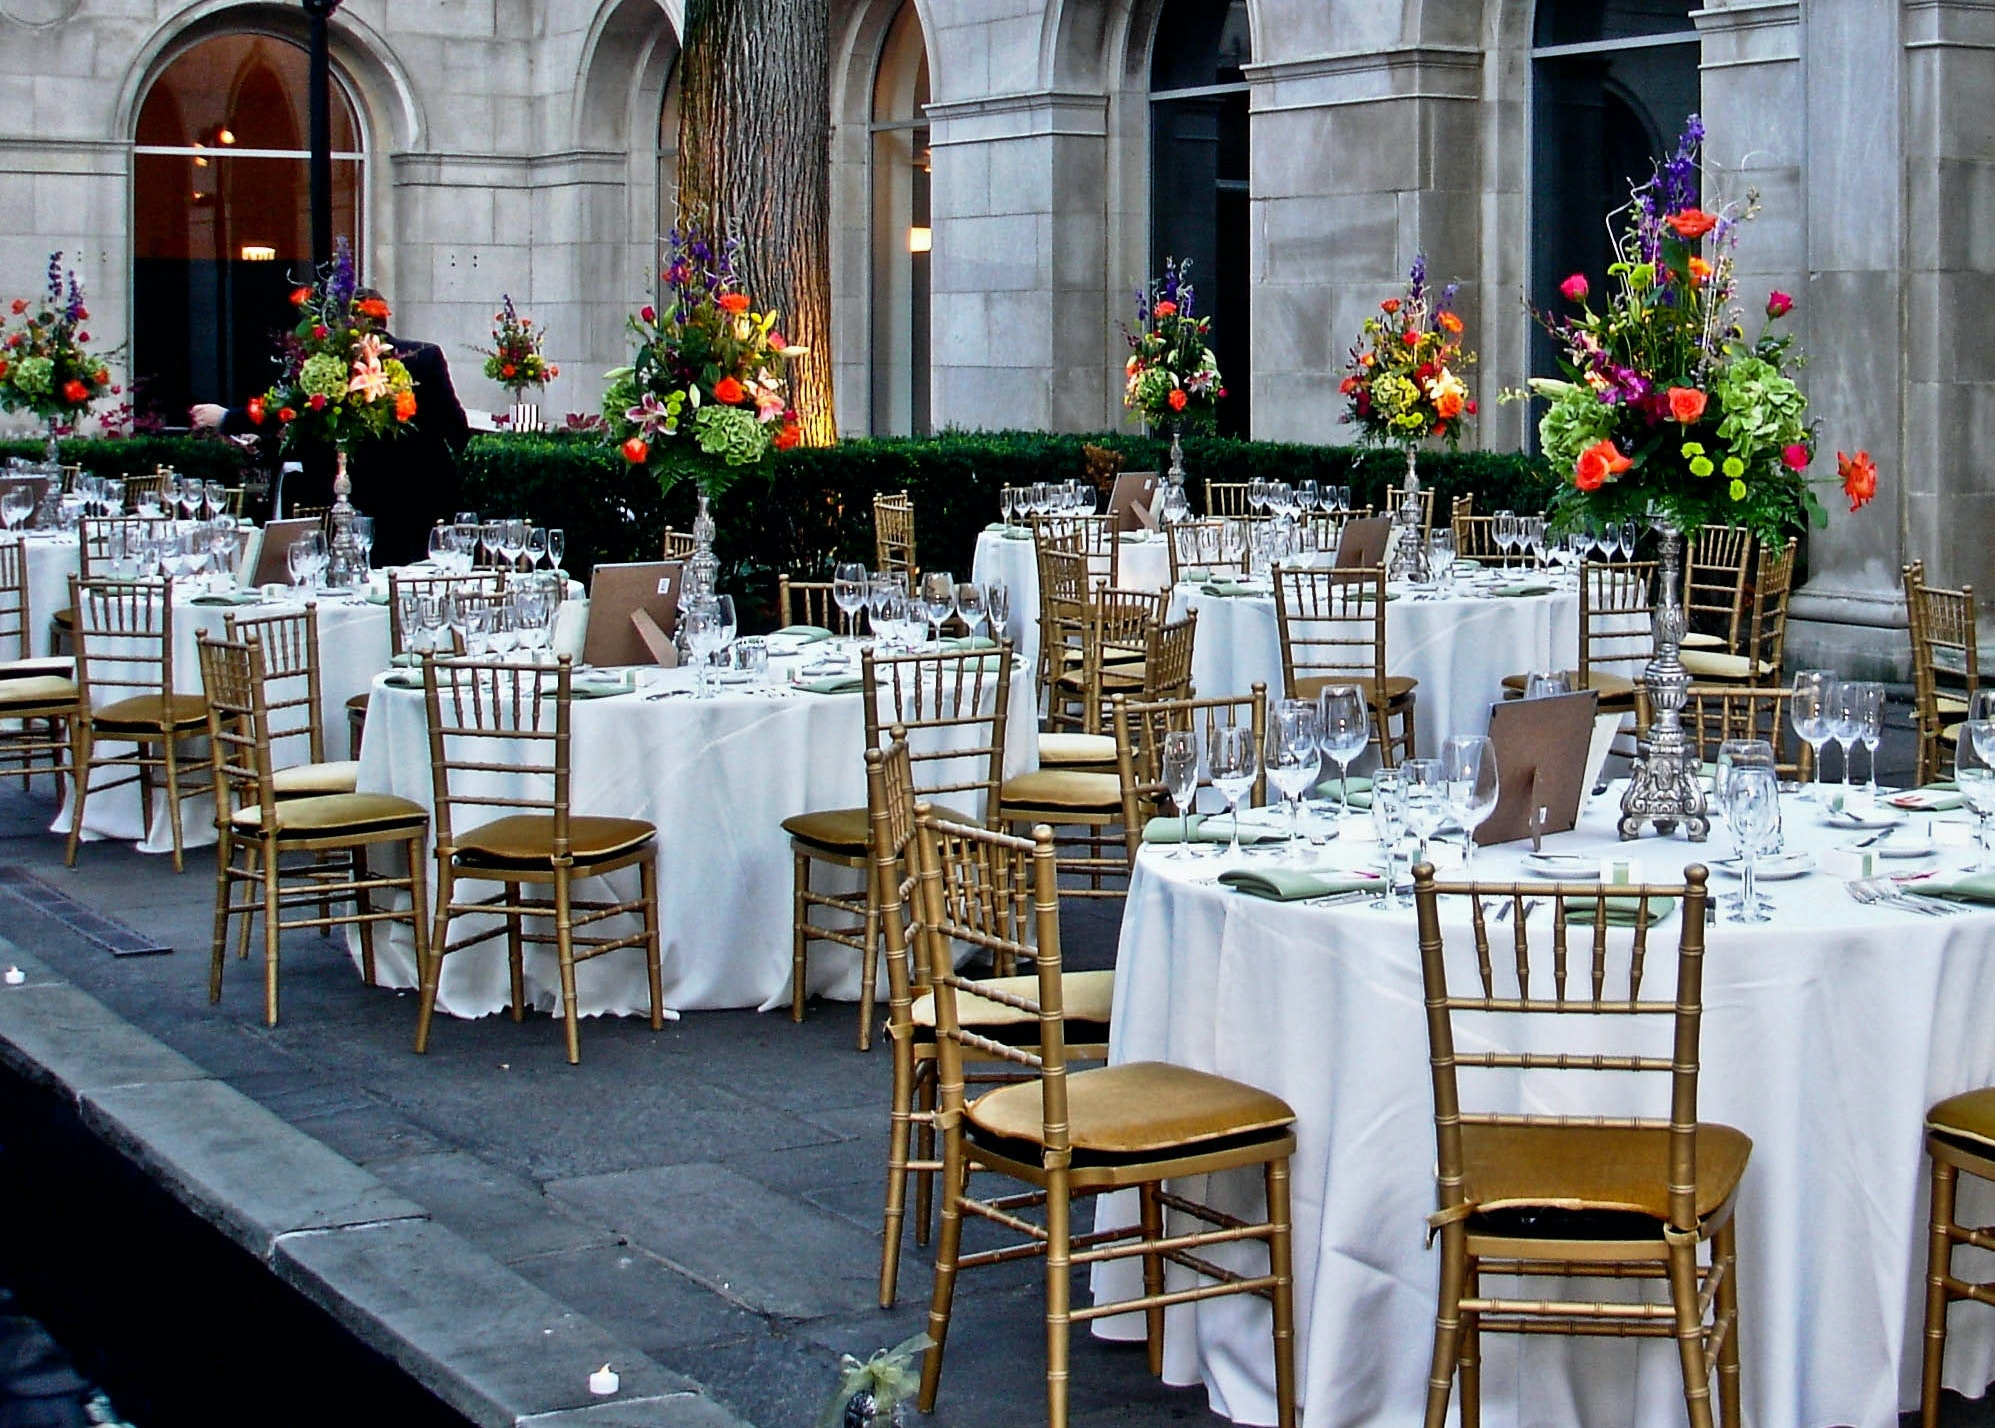 Tables with gold chairs and white table clothes are set outside in a marble court